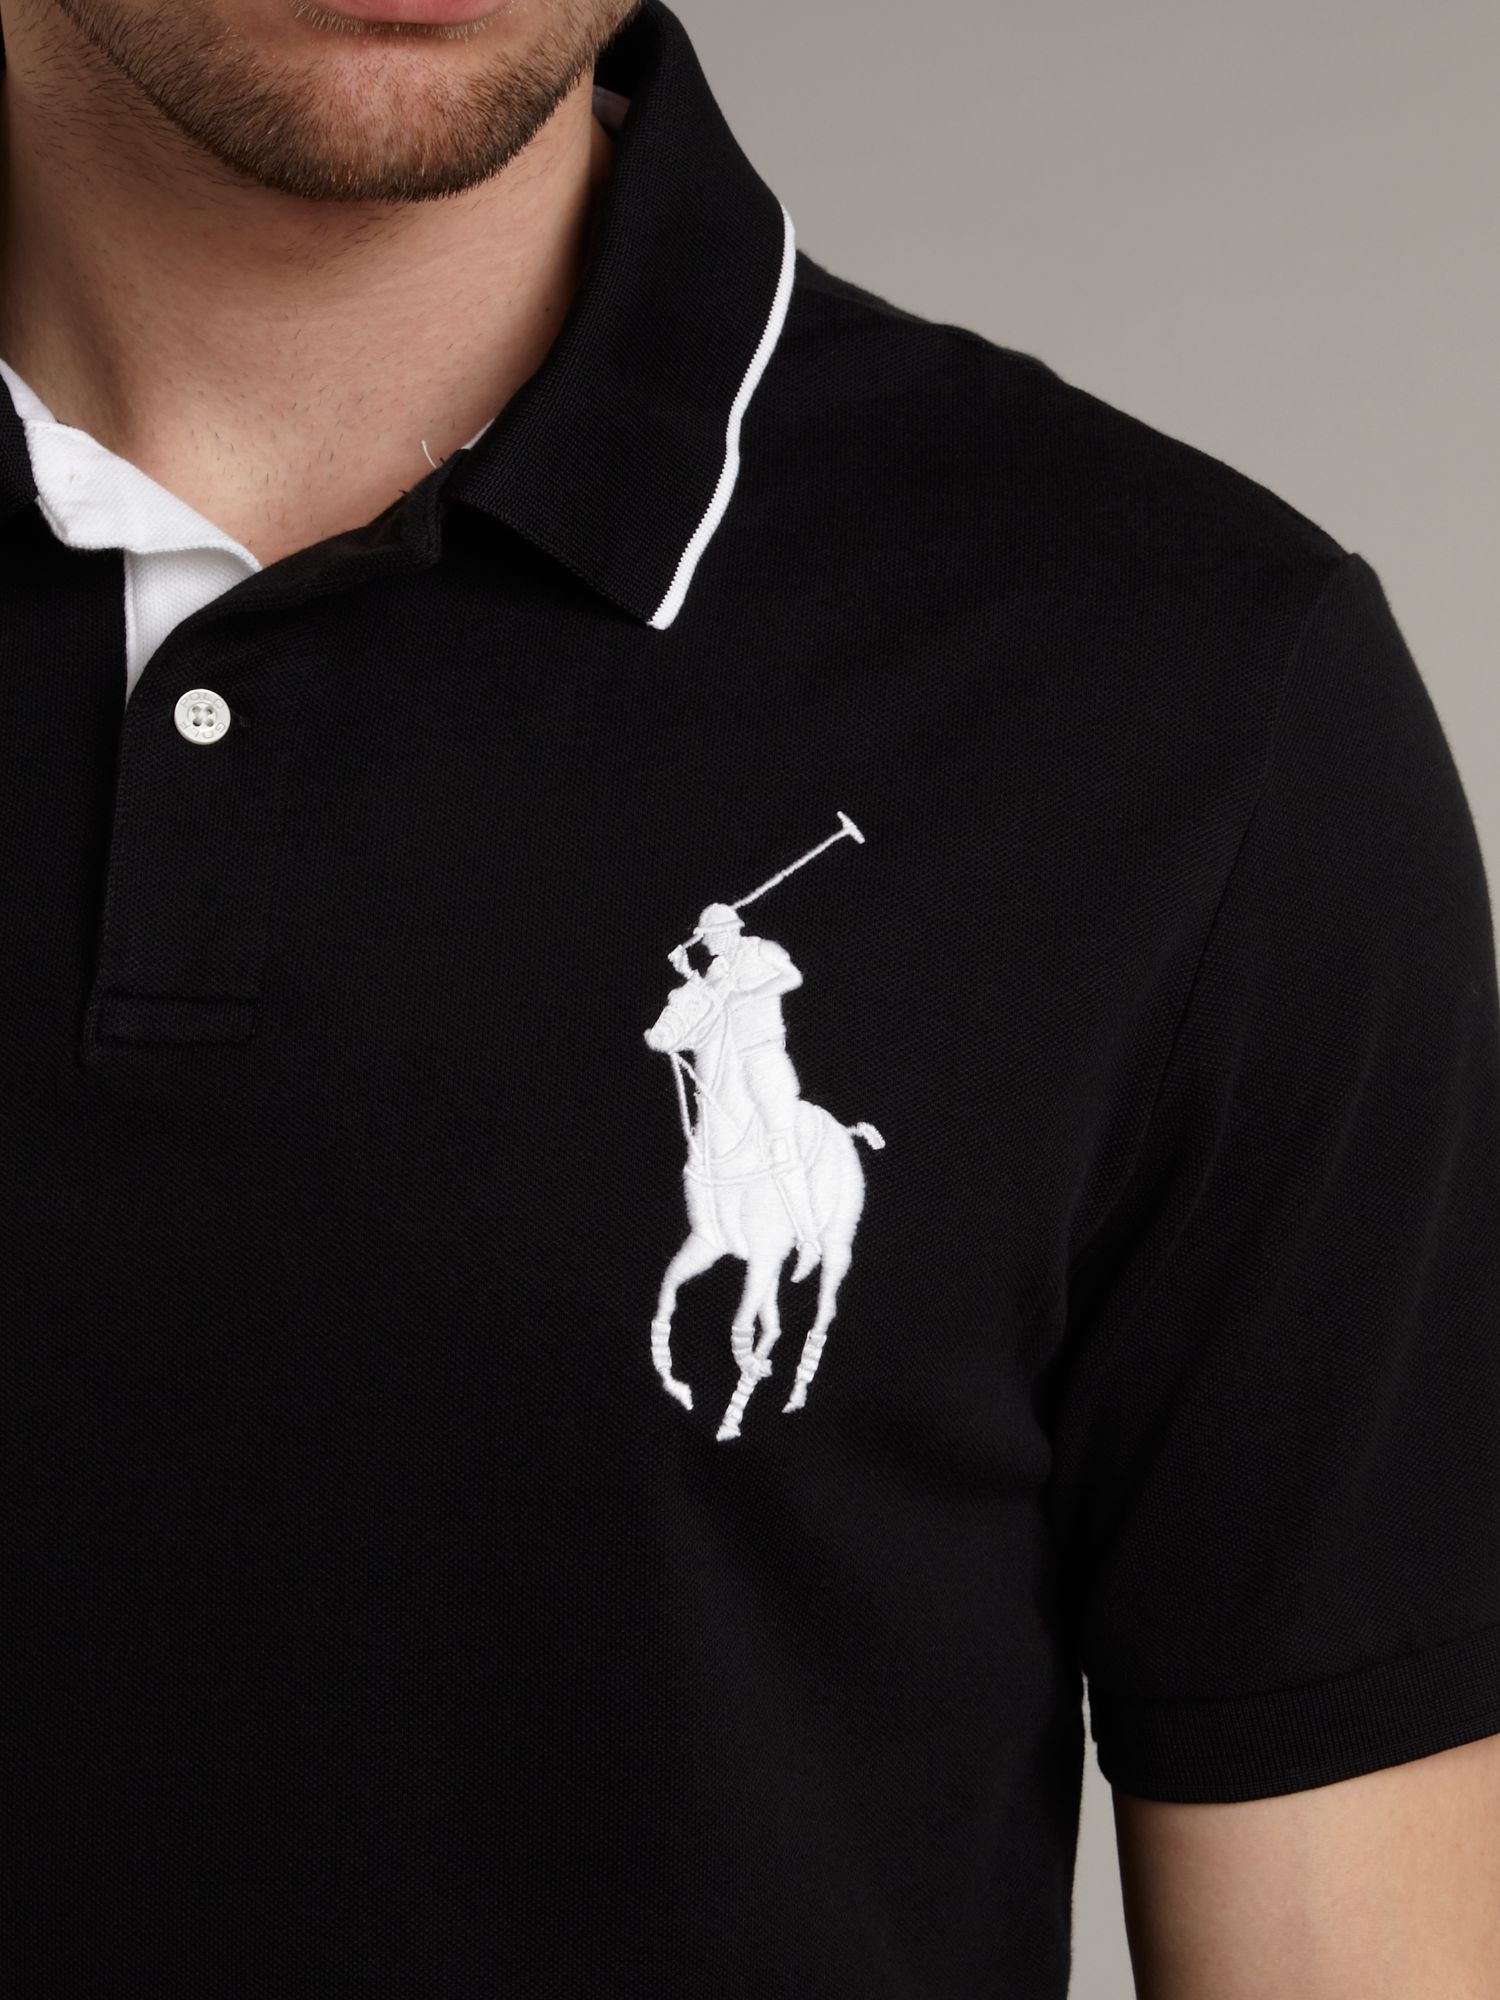 ralph lauren 250 jacket golf shirts